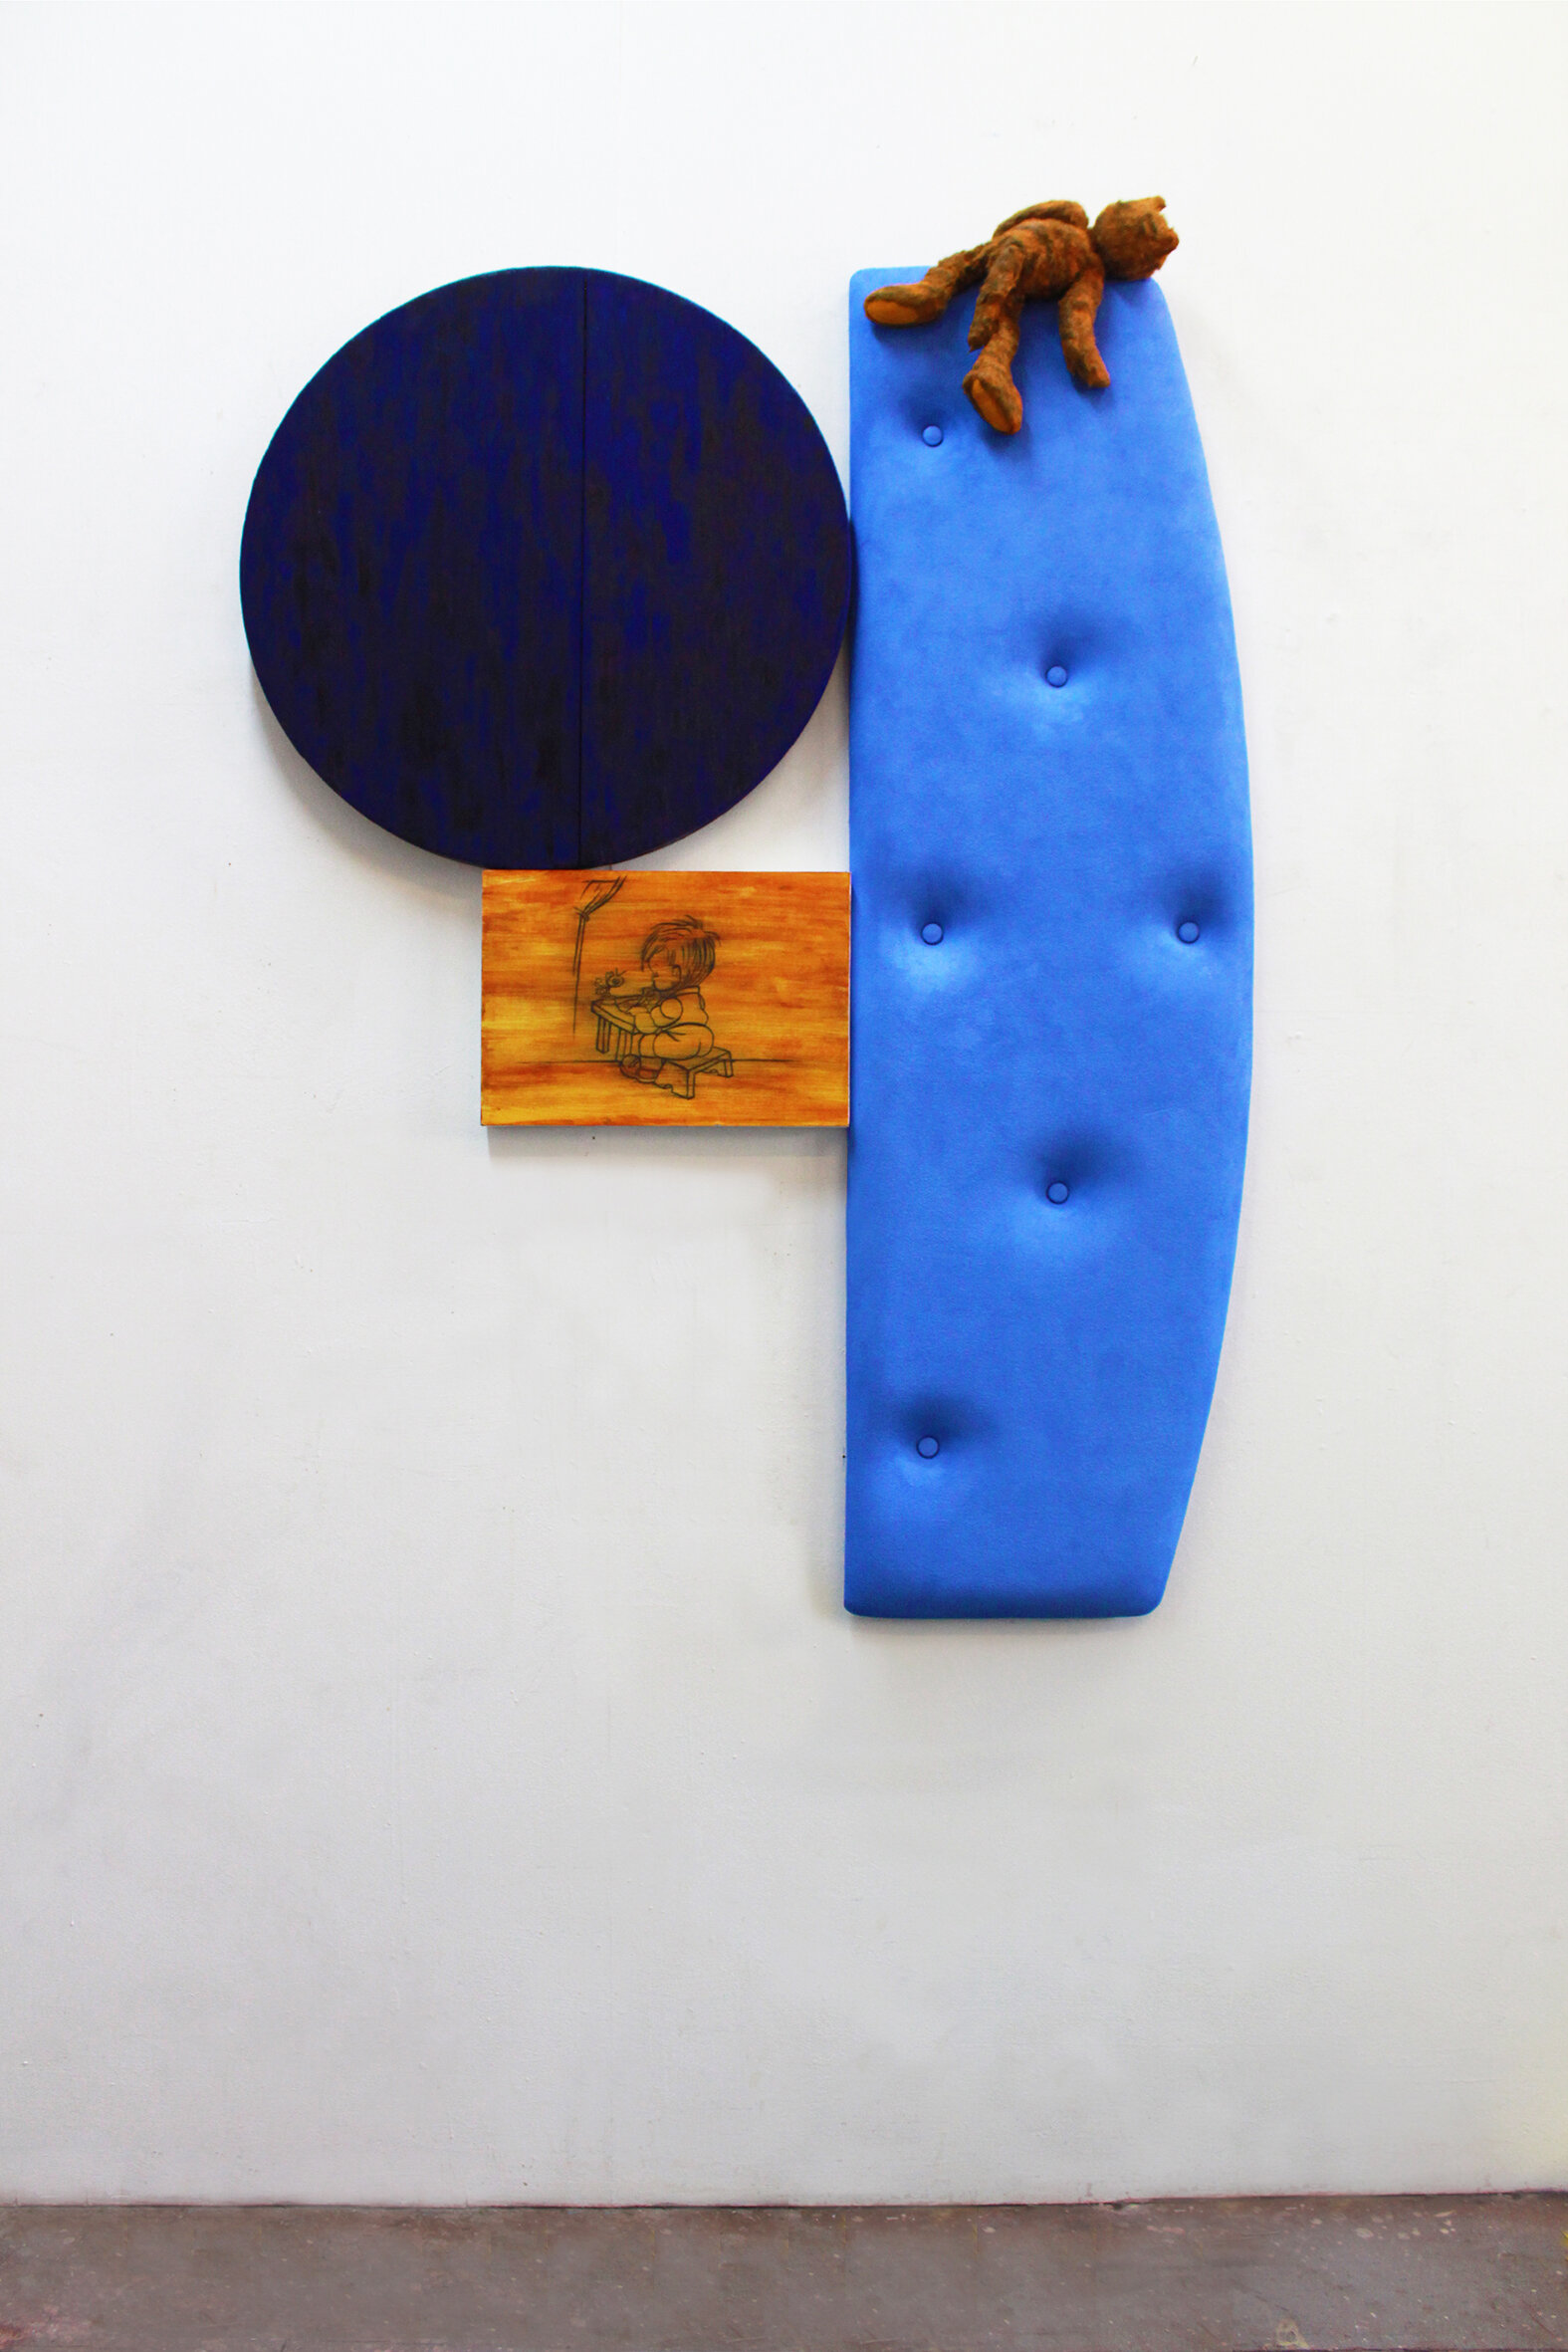 Blue bed, barrel head and soft toy  2019 mixed media, 1420 x 1000 x 40mm (approx.)